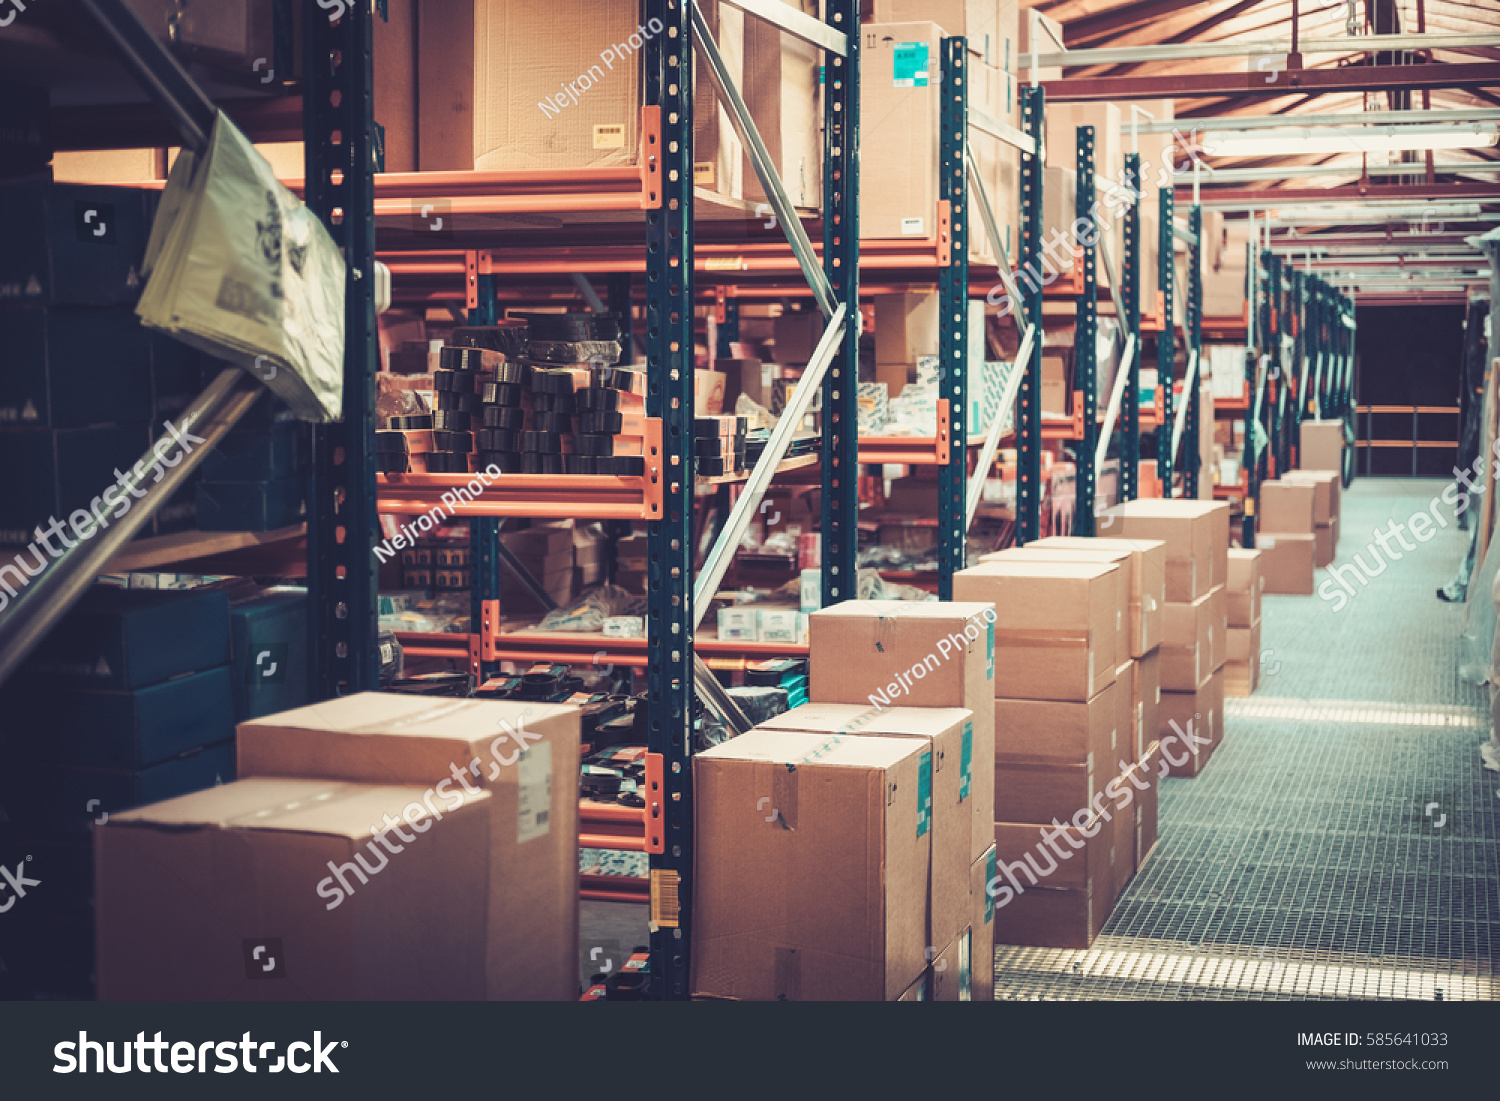 Crates Boxes On Shelves Warehouse Stock Photo (edit Now